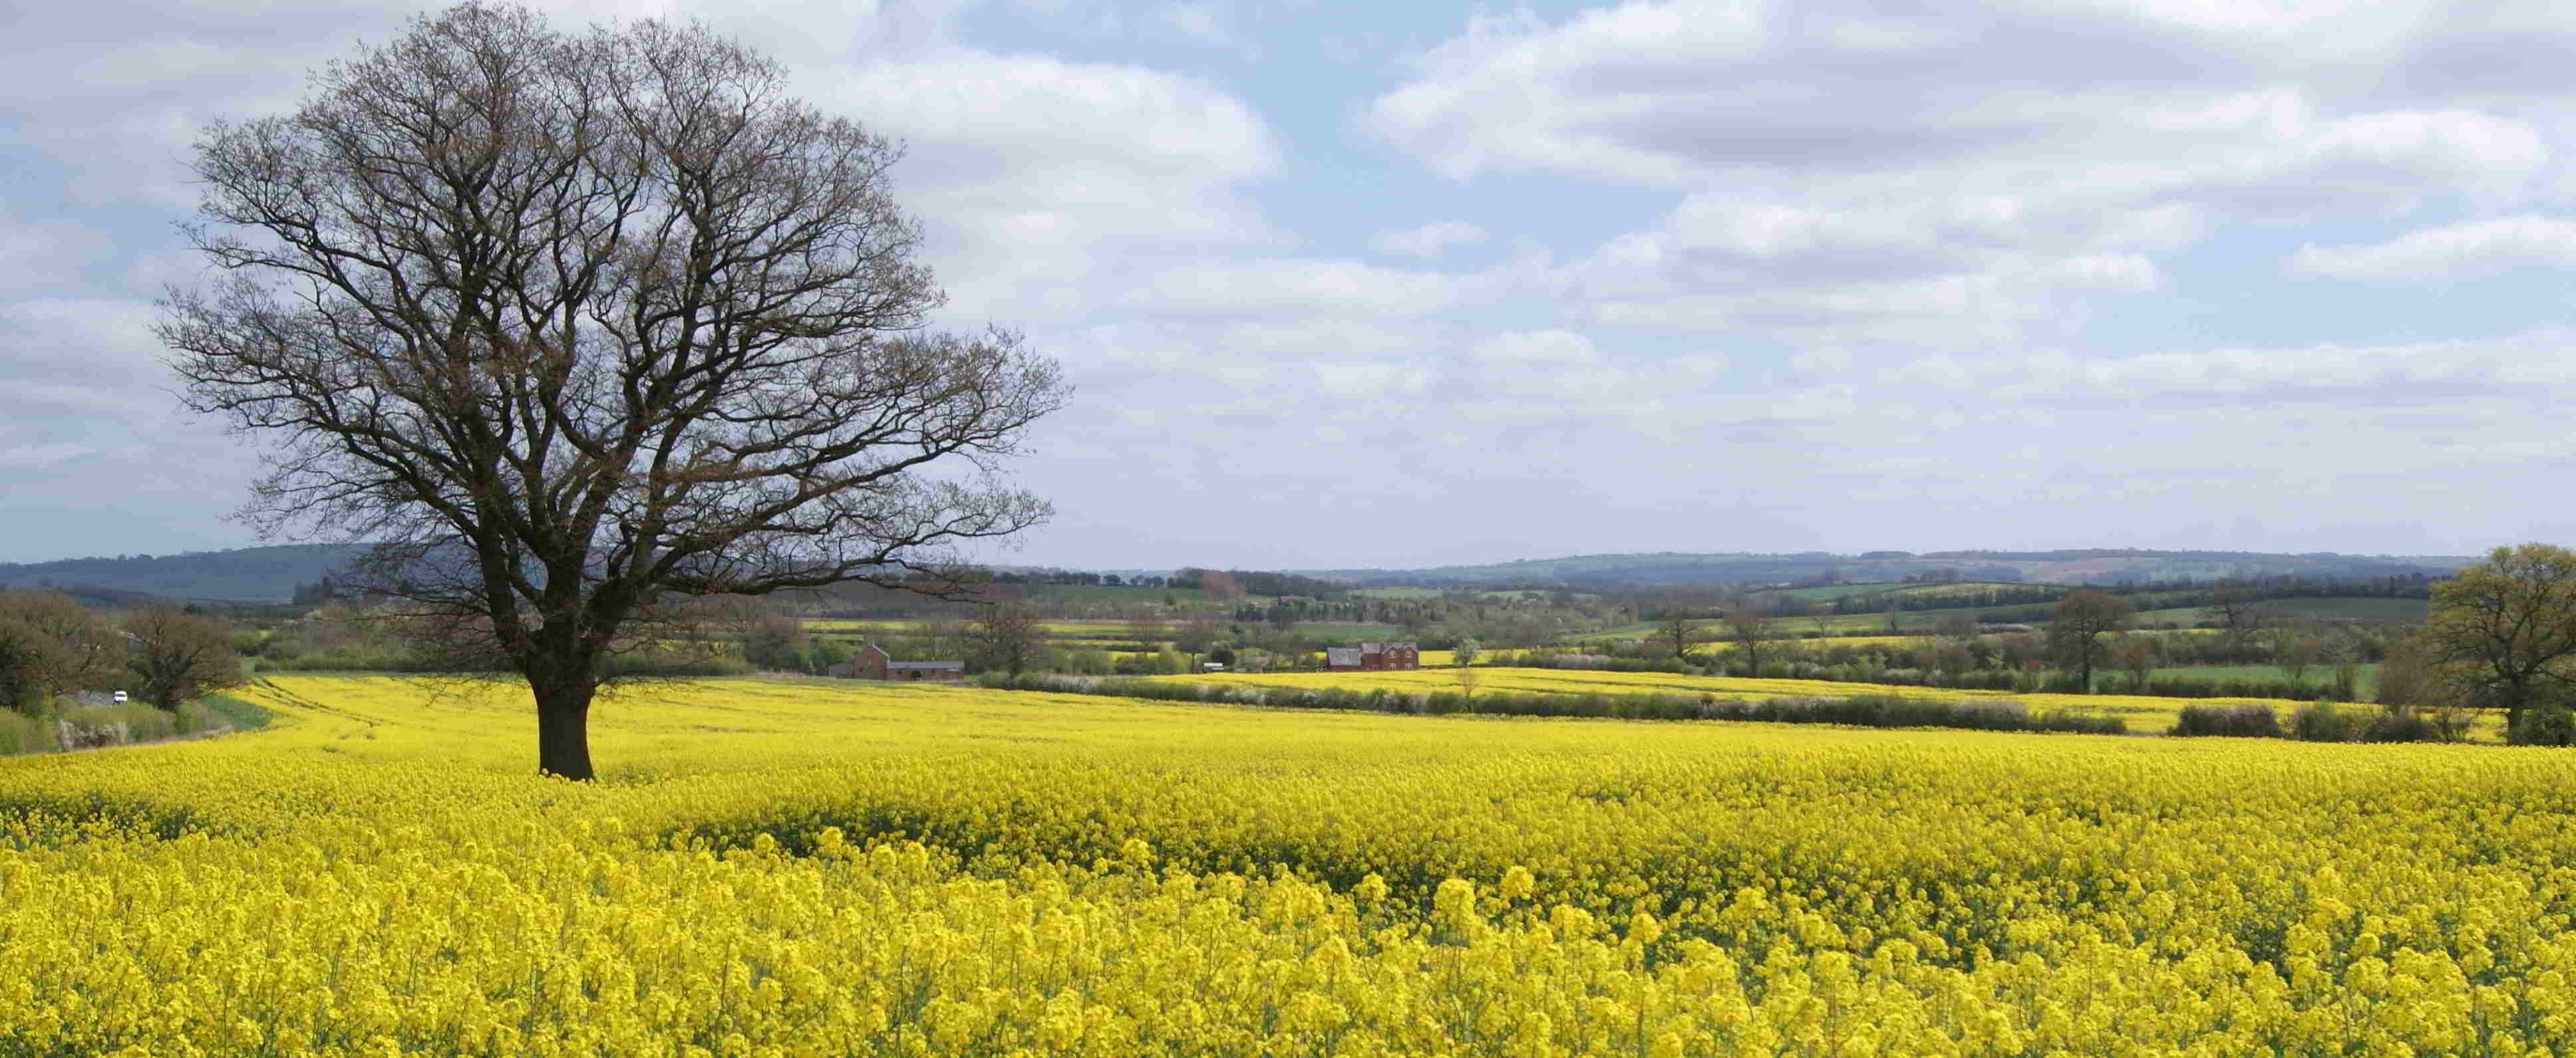 A view of the rapeseed in bloom on the road from Chipping Campden to Shipston on stour